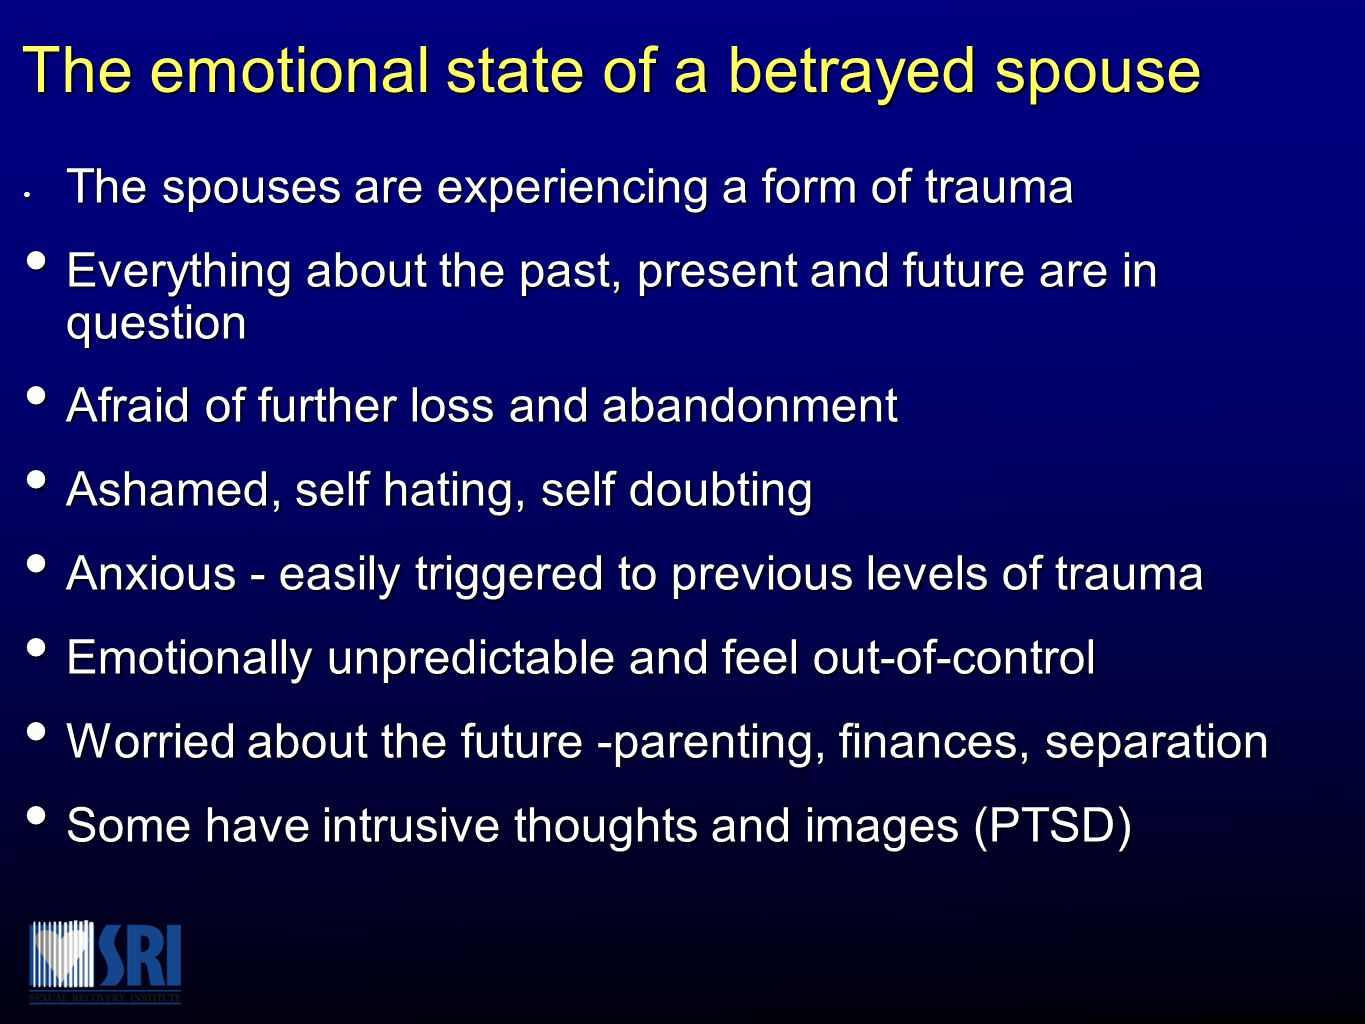 The emotional state of a betrayed spouse